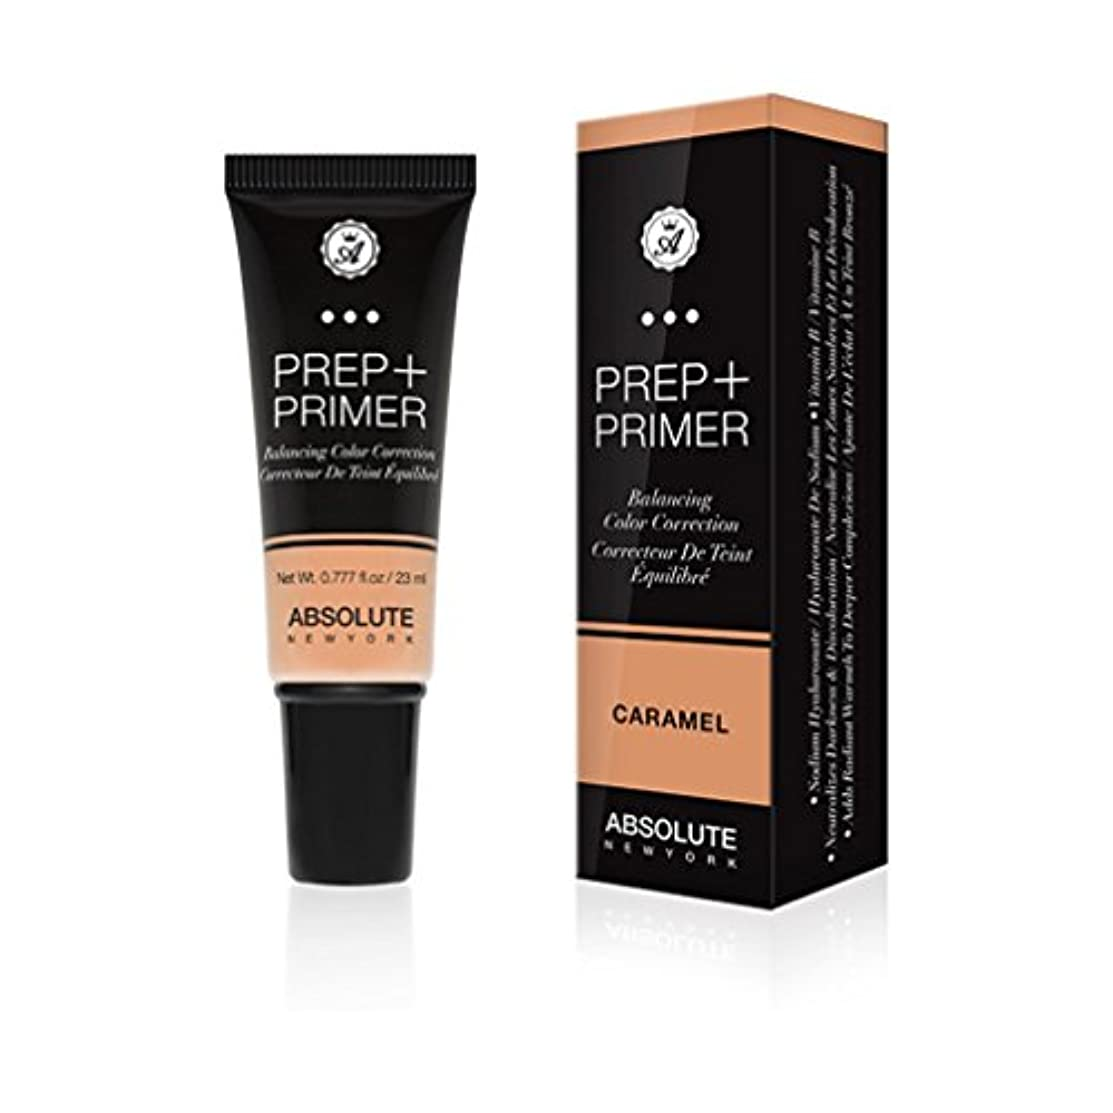 (3 Pack) ABSOLUTE Prep + Primer - Caramel (並行輸入品)